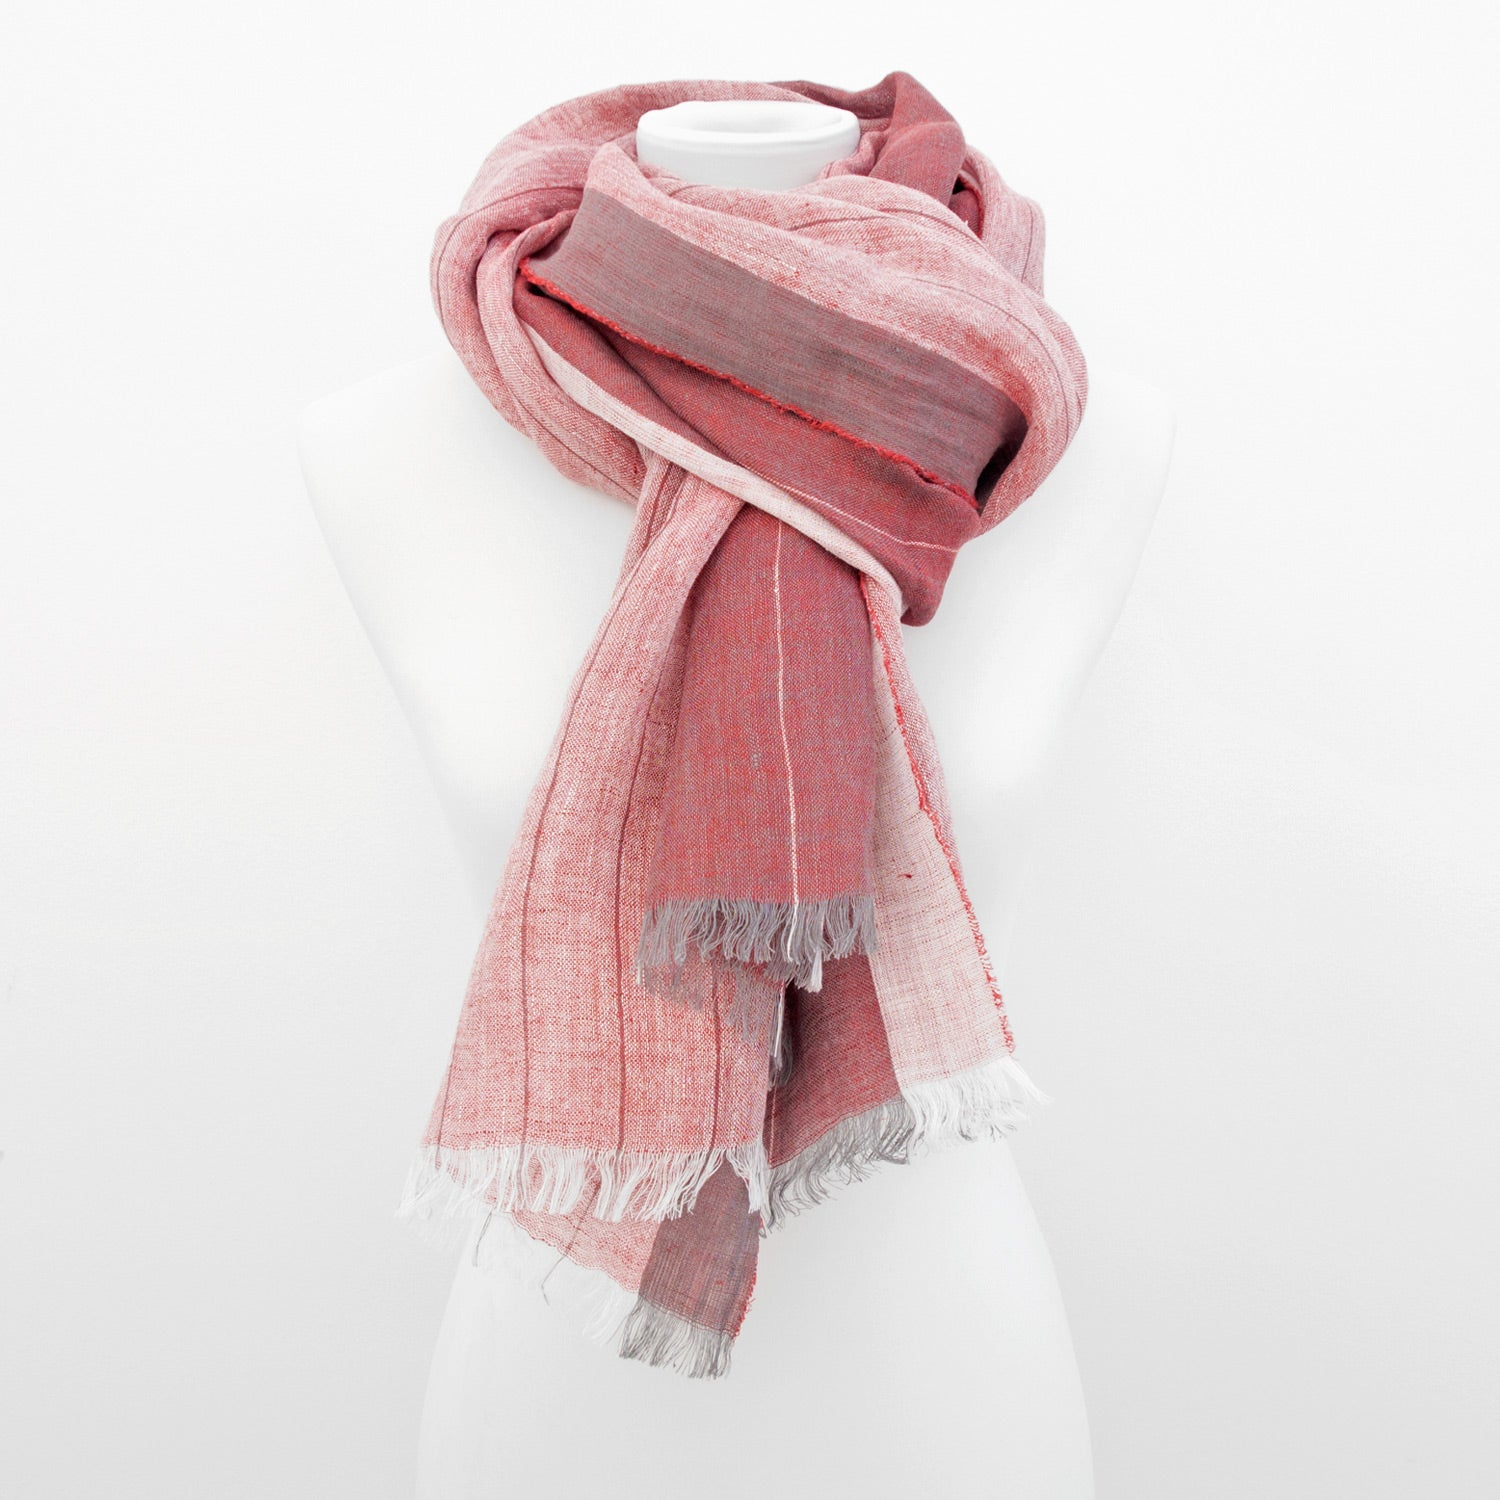 Doria & Dojola Pin Stripes Linen Shawl. 100% Linen 75 cm x 200 cm. Made in Italy. Pictured in Red.